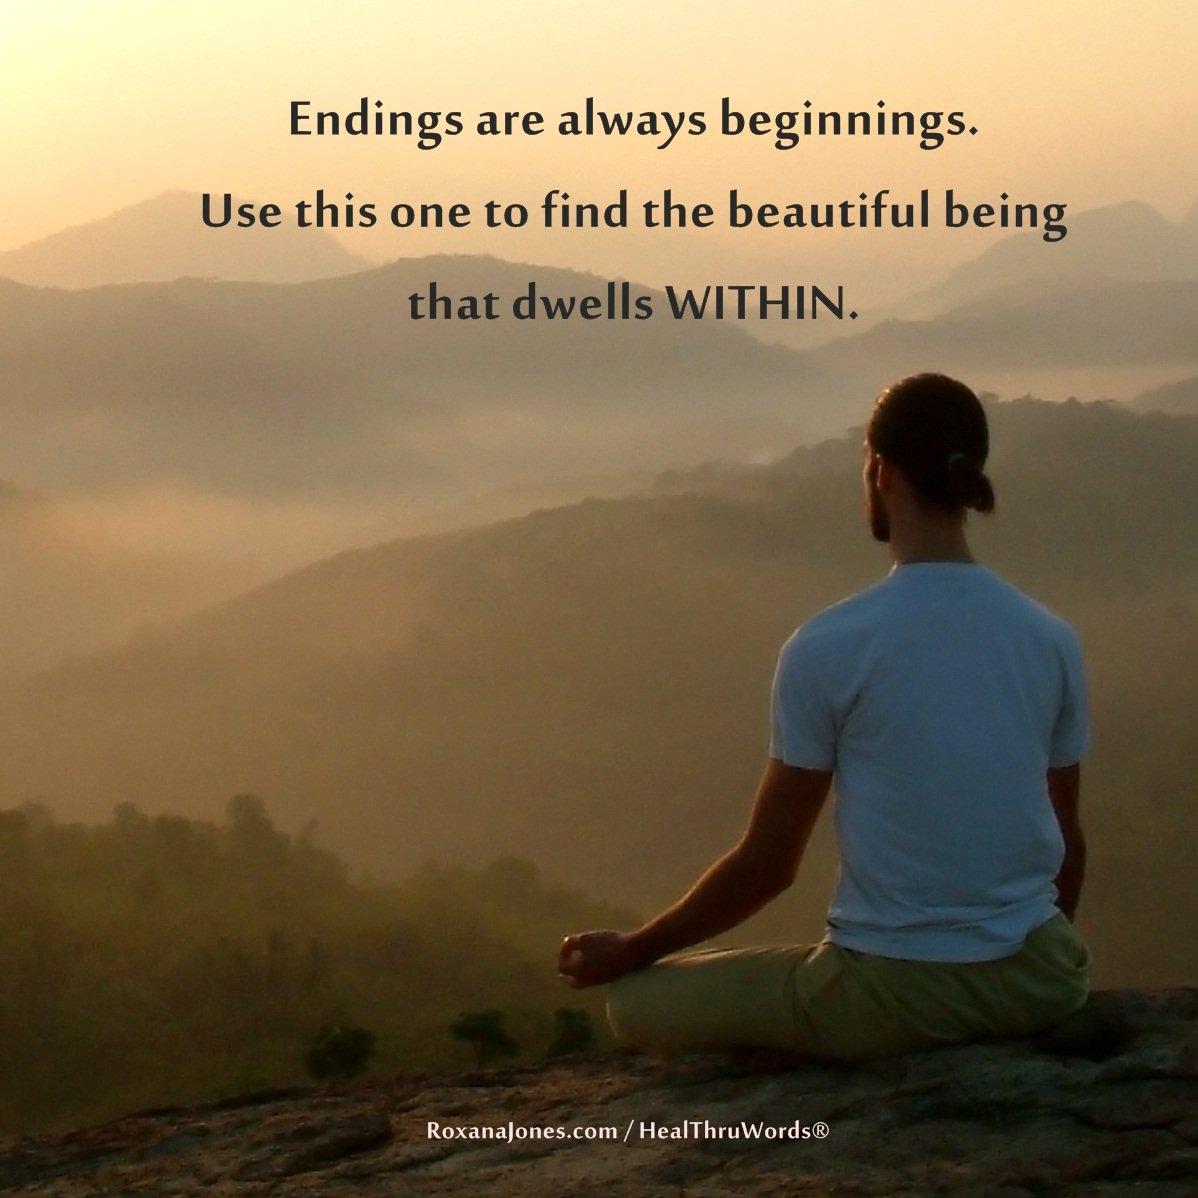 Inspirational Image: Begin Within